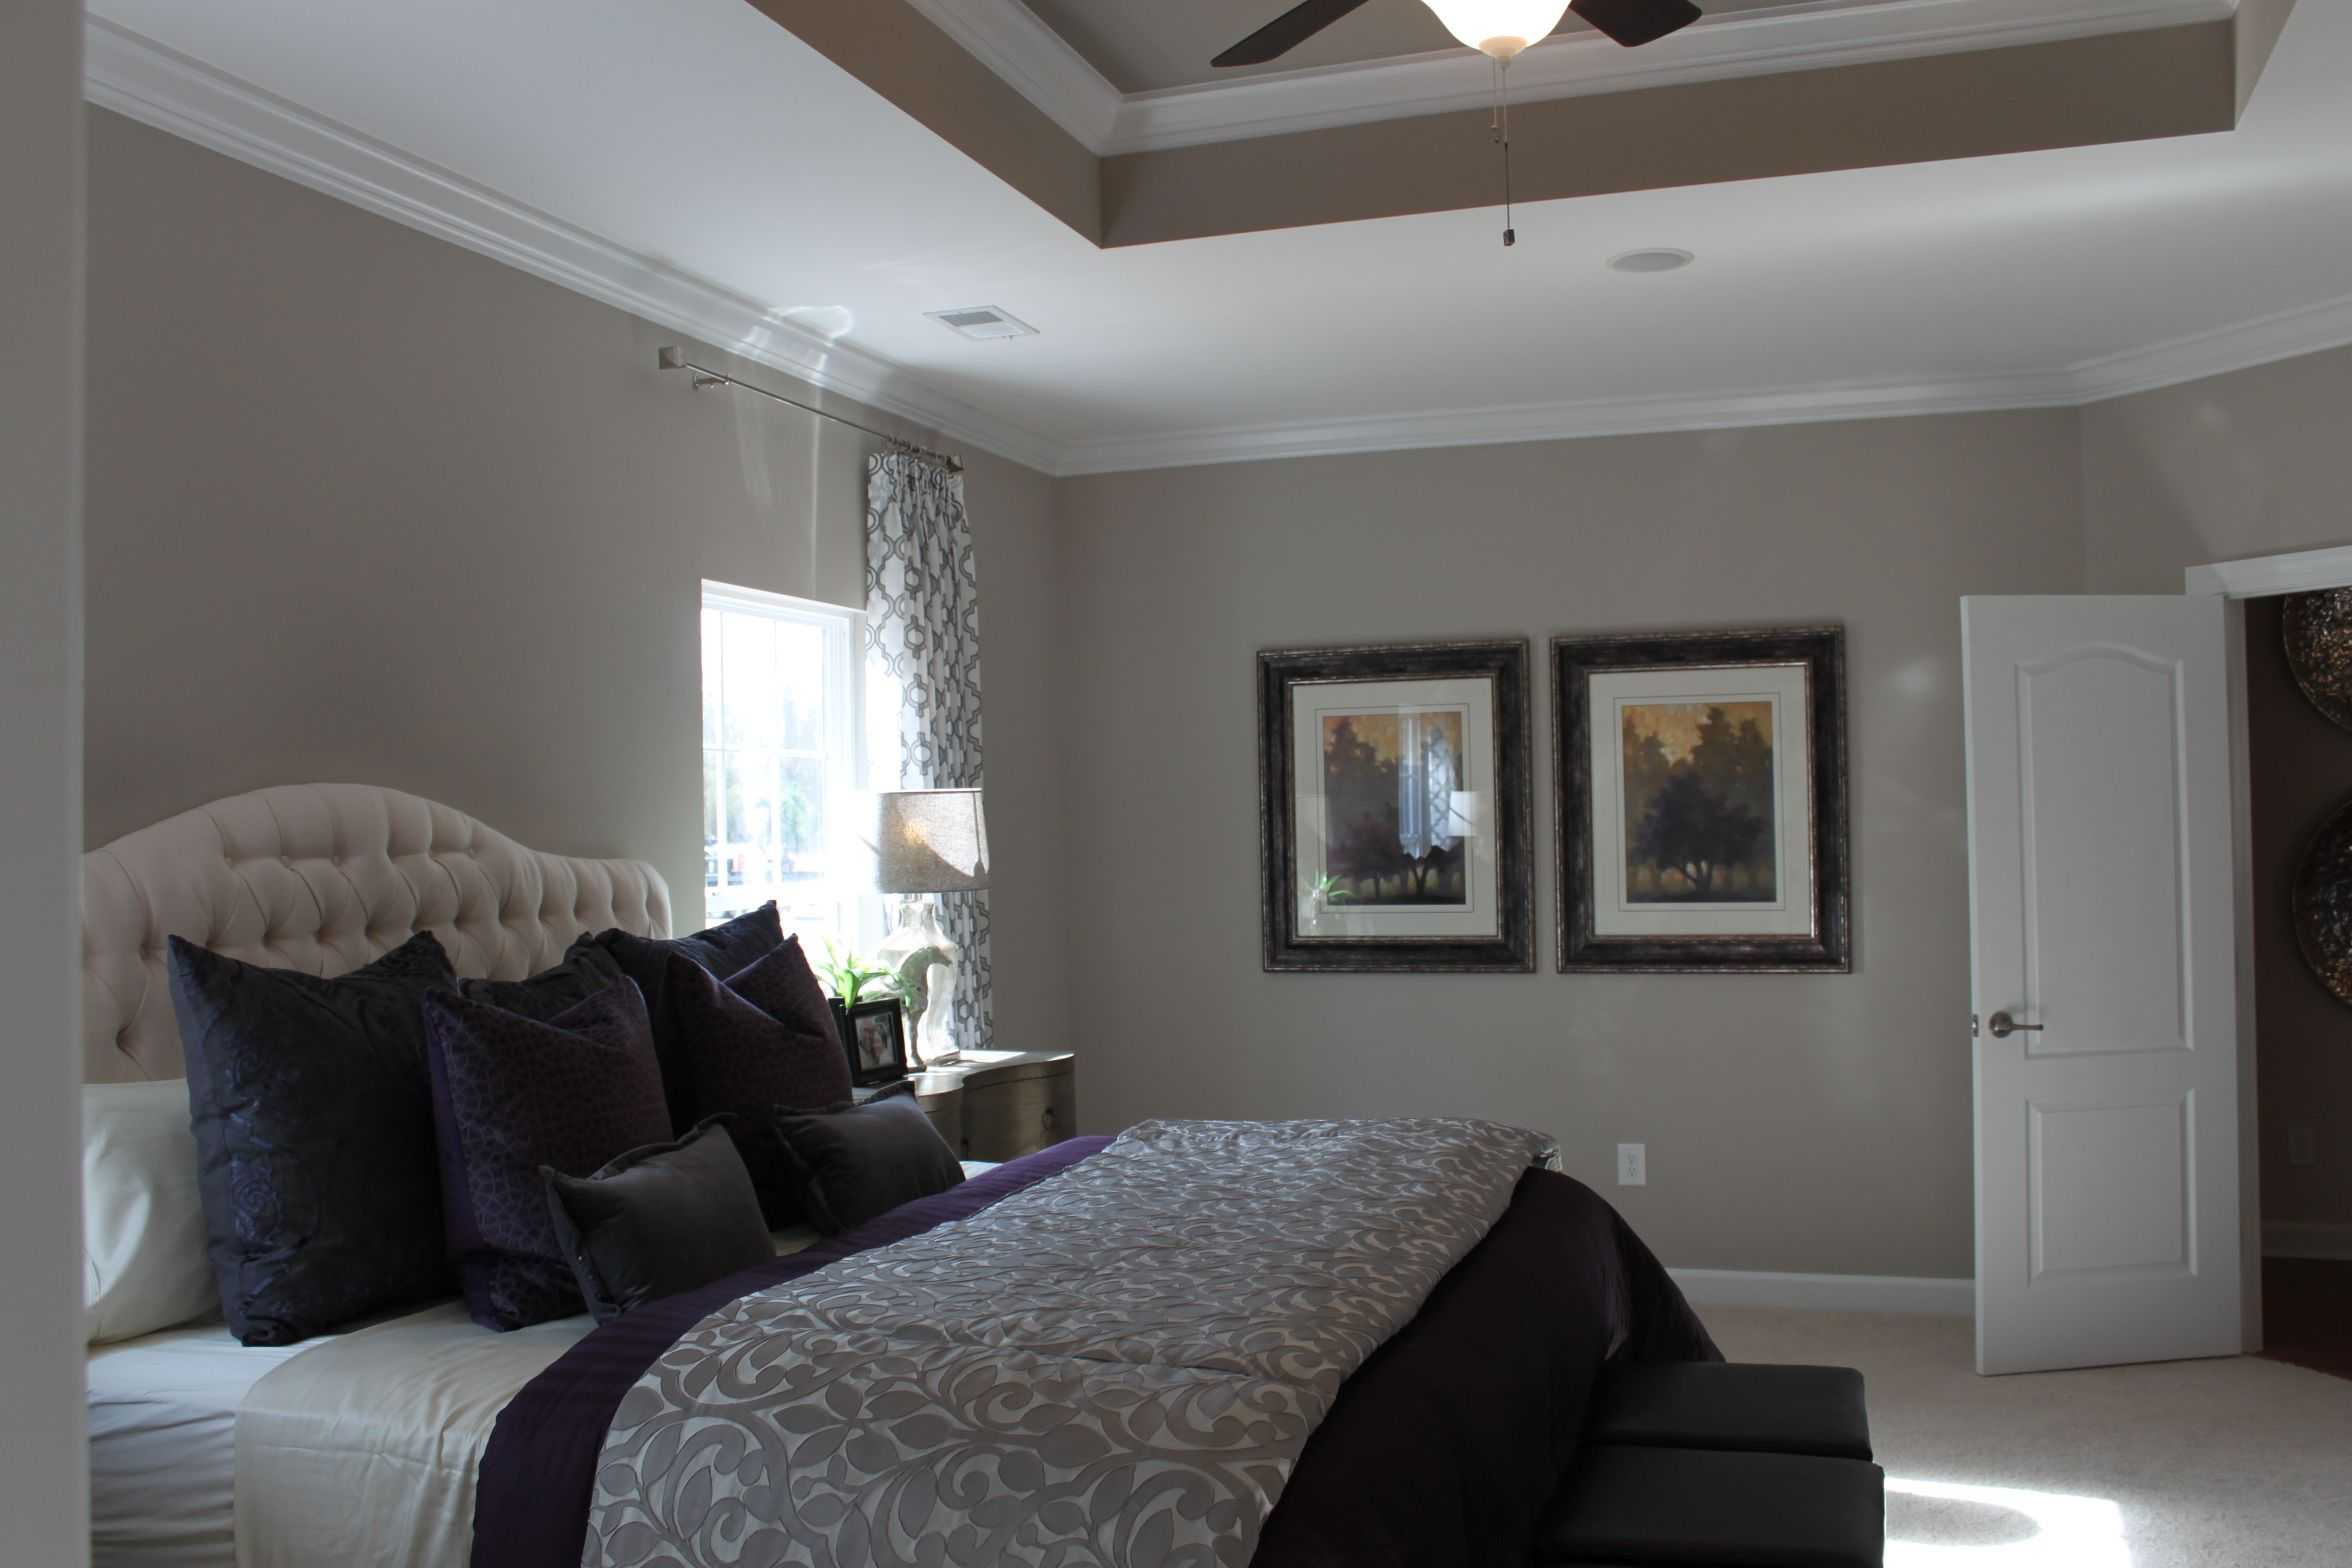 Huge 15 x 19 master bedroom with tray ceiling magnolia model home at brookefield estates - Master bedroom ceiling designs ...